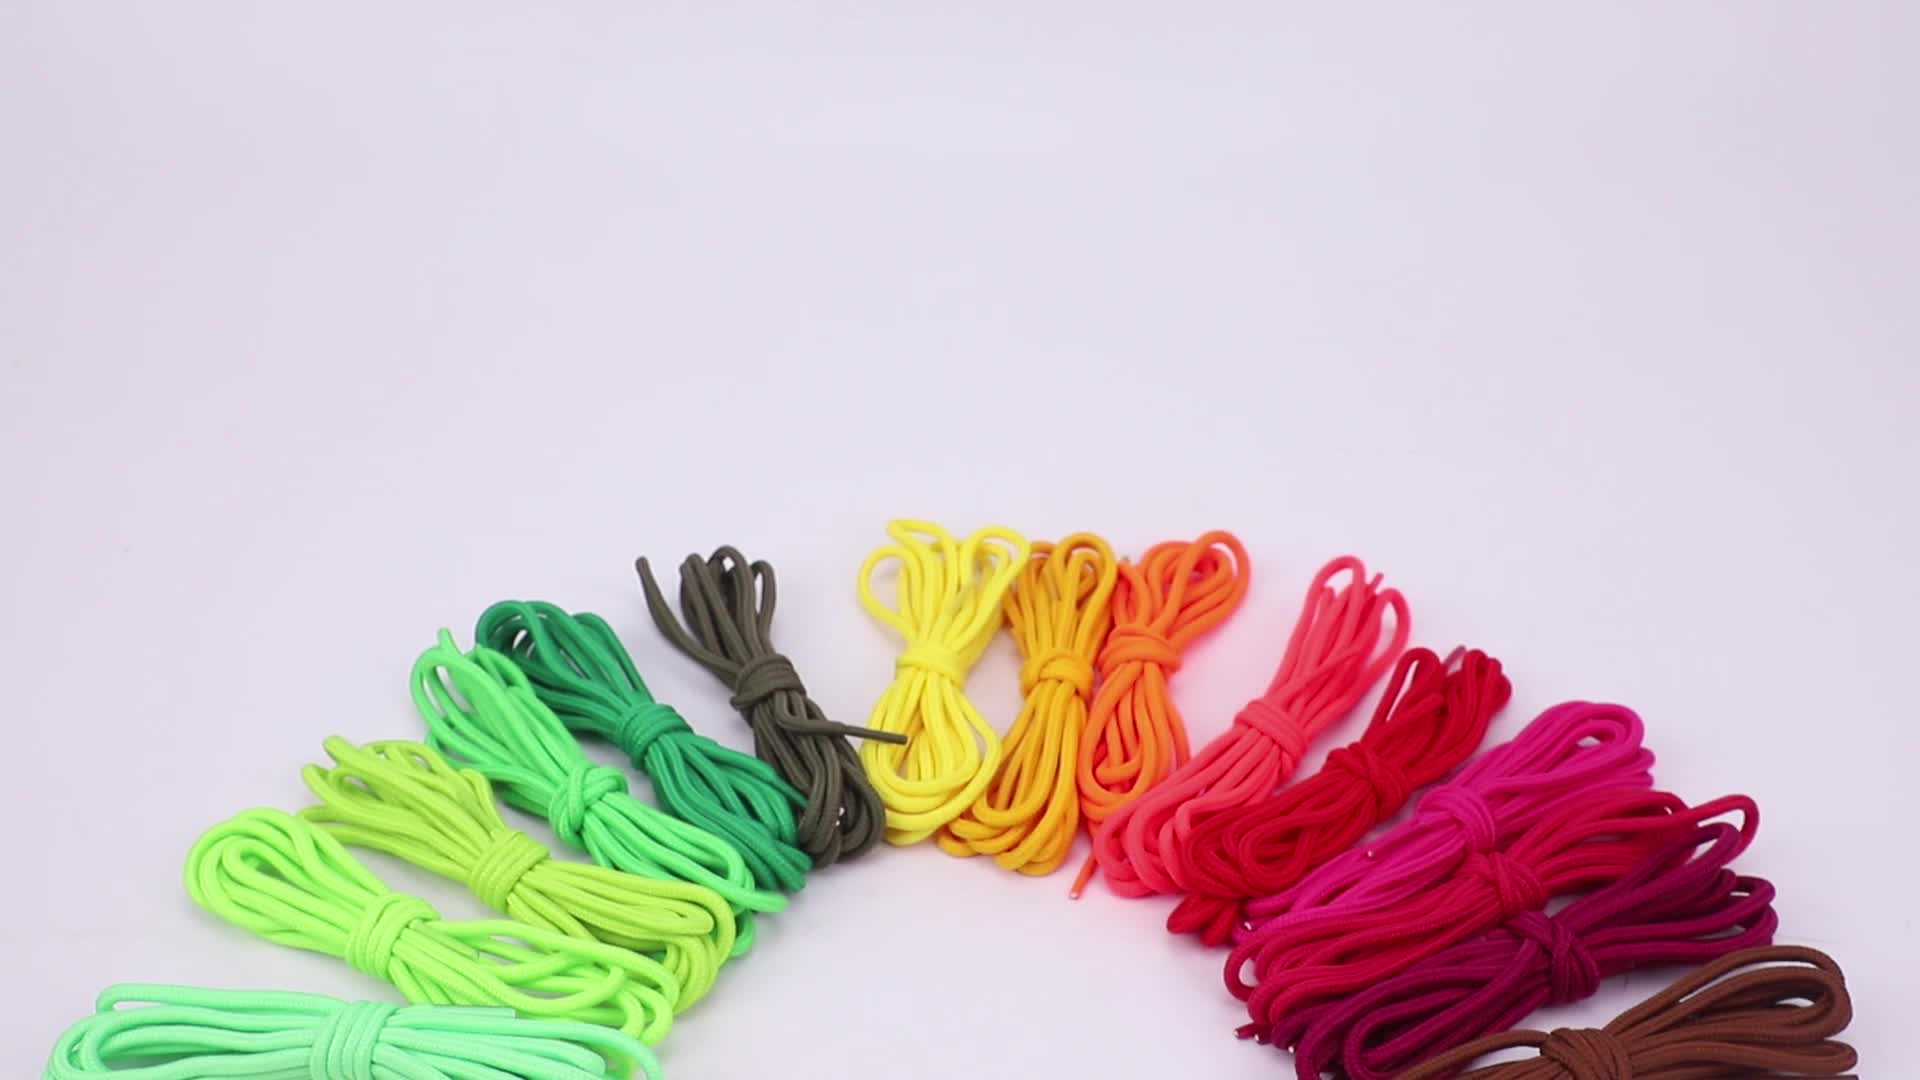 Round Shoelaces Assorted Colored 5mm Width Shoe Laces Strings for Sneakers Boots Skateboard Hiking Athletic Sport Shoes